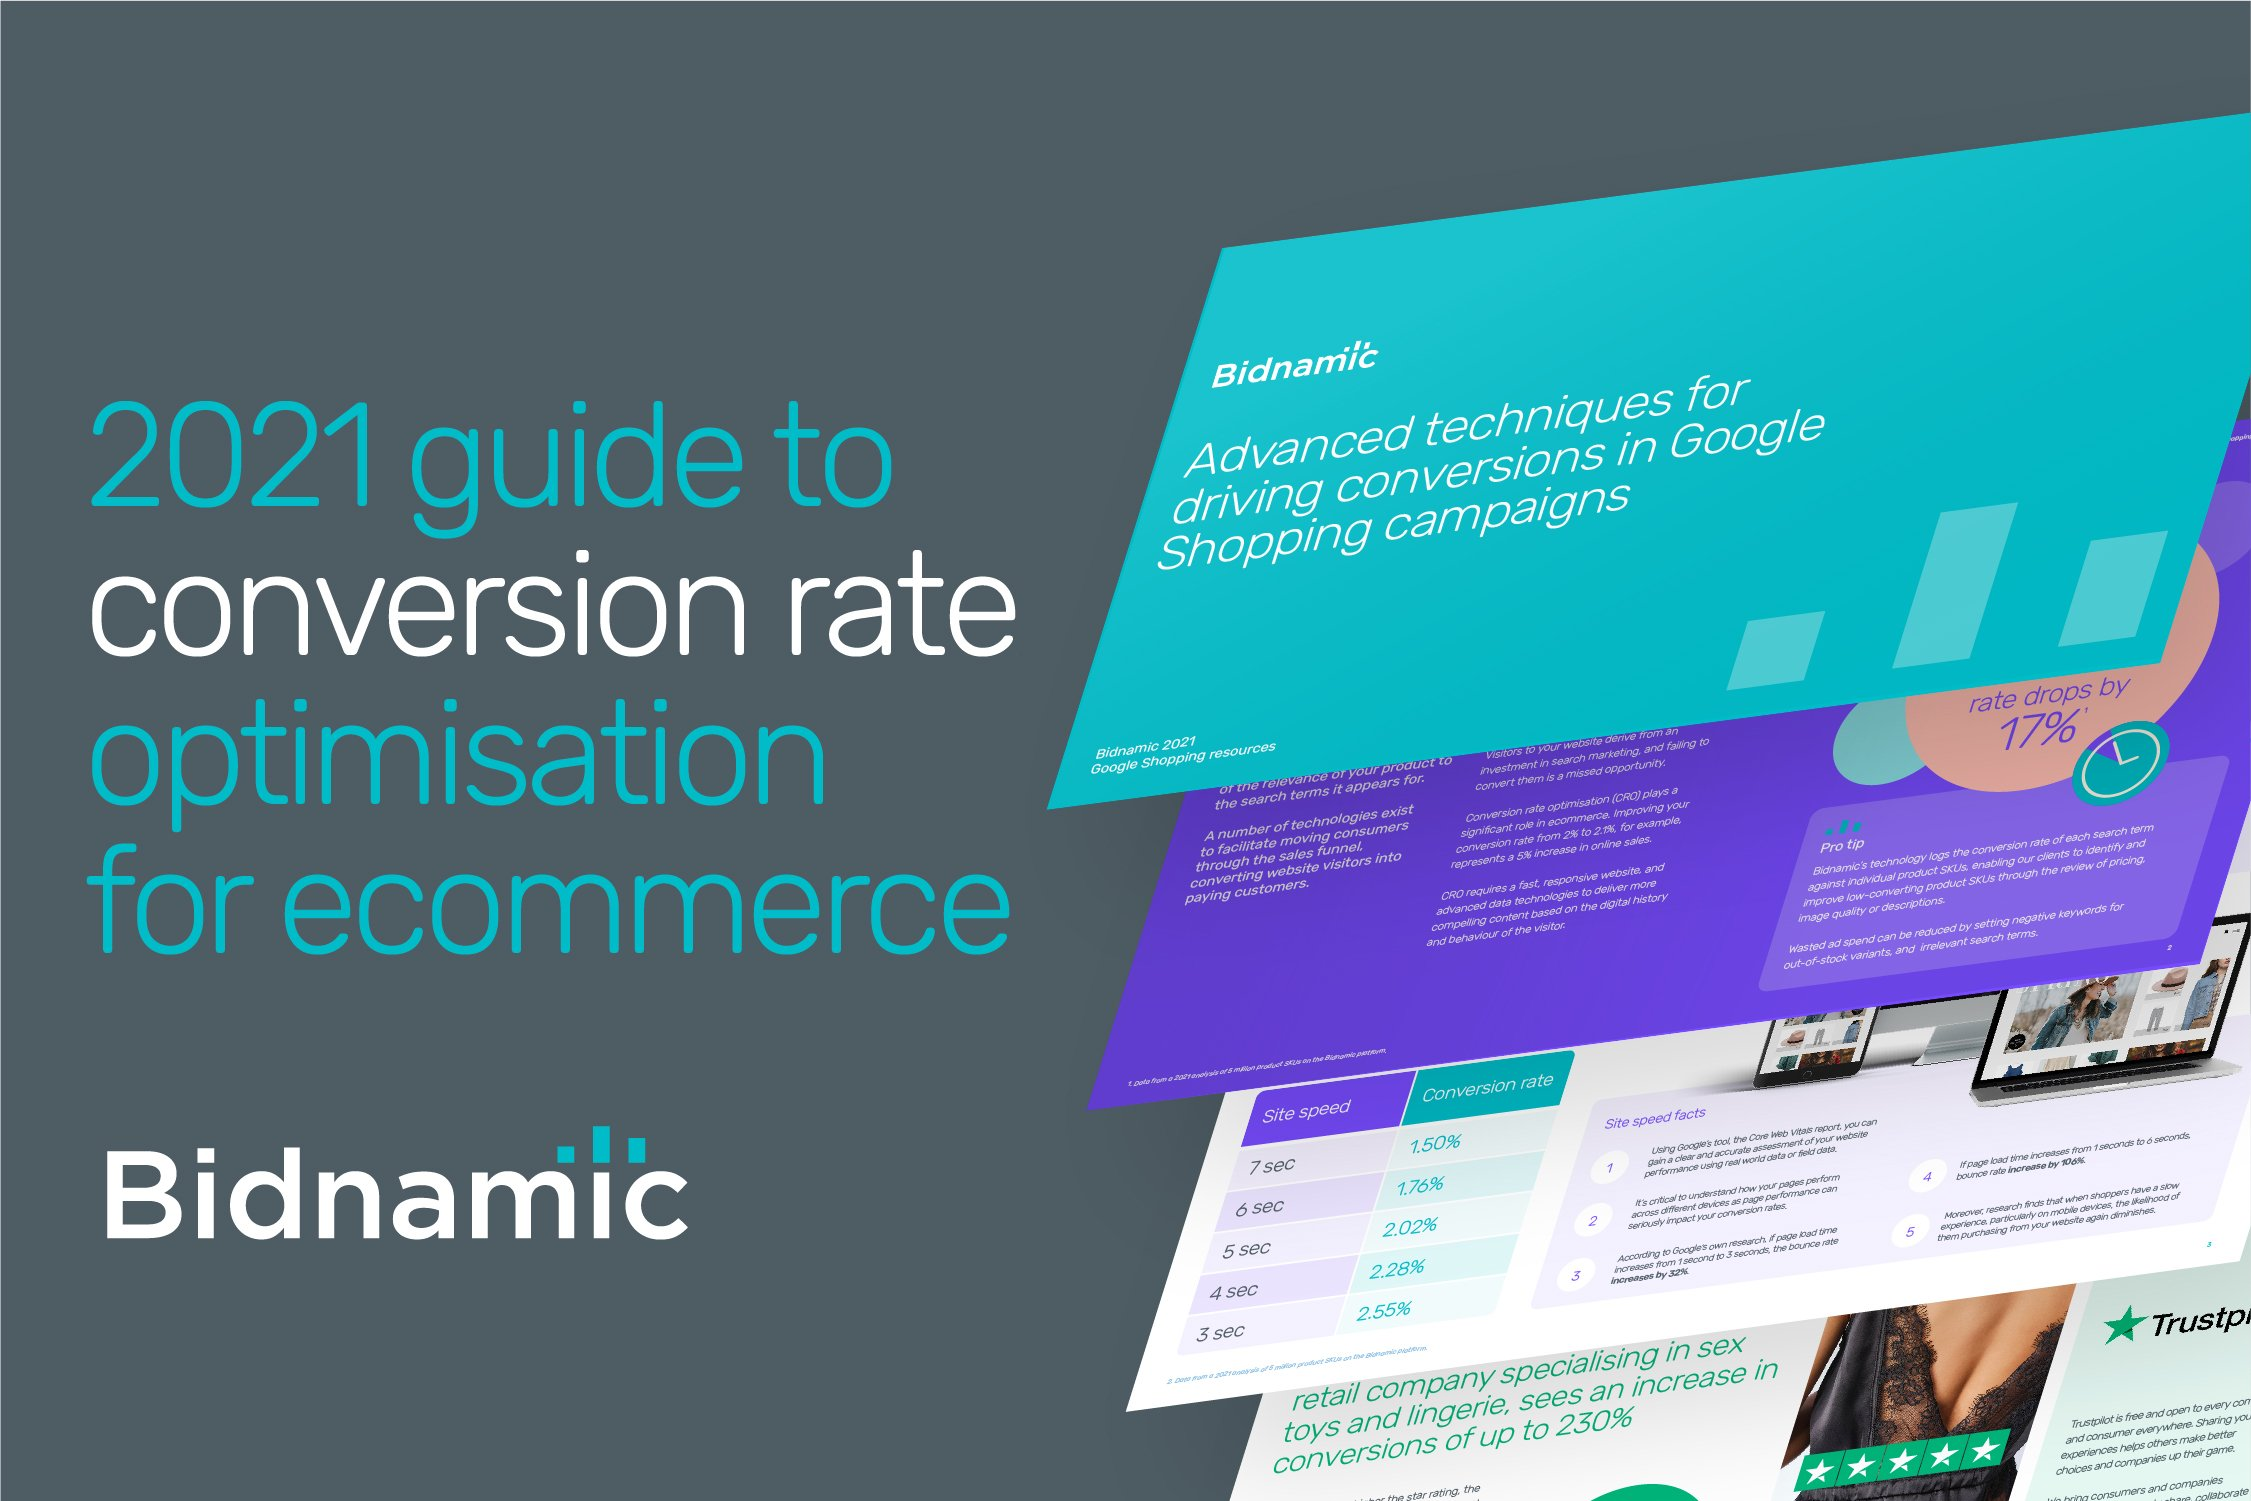 Bidnamic's Guide to Conversion Rate Optimisation has arrived